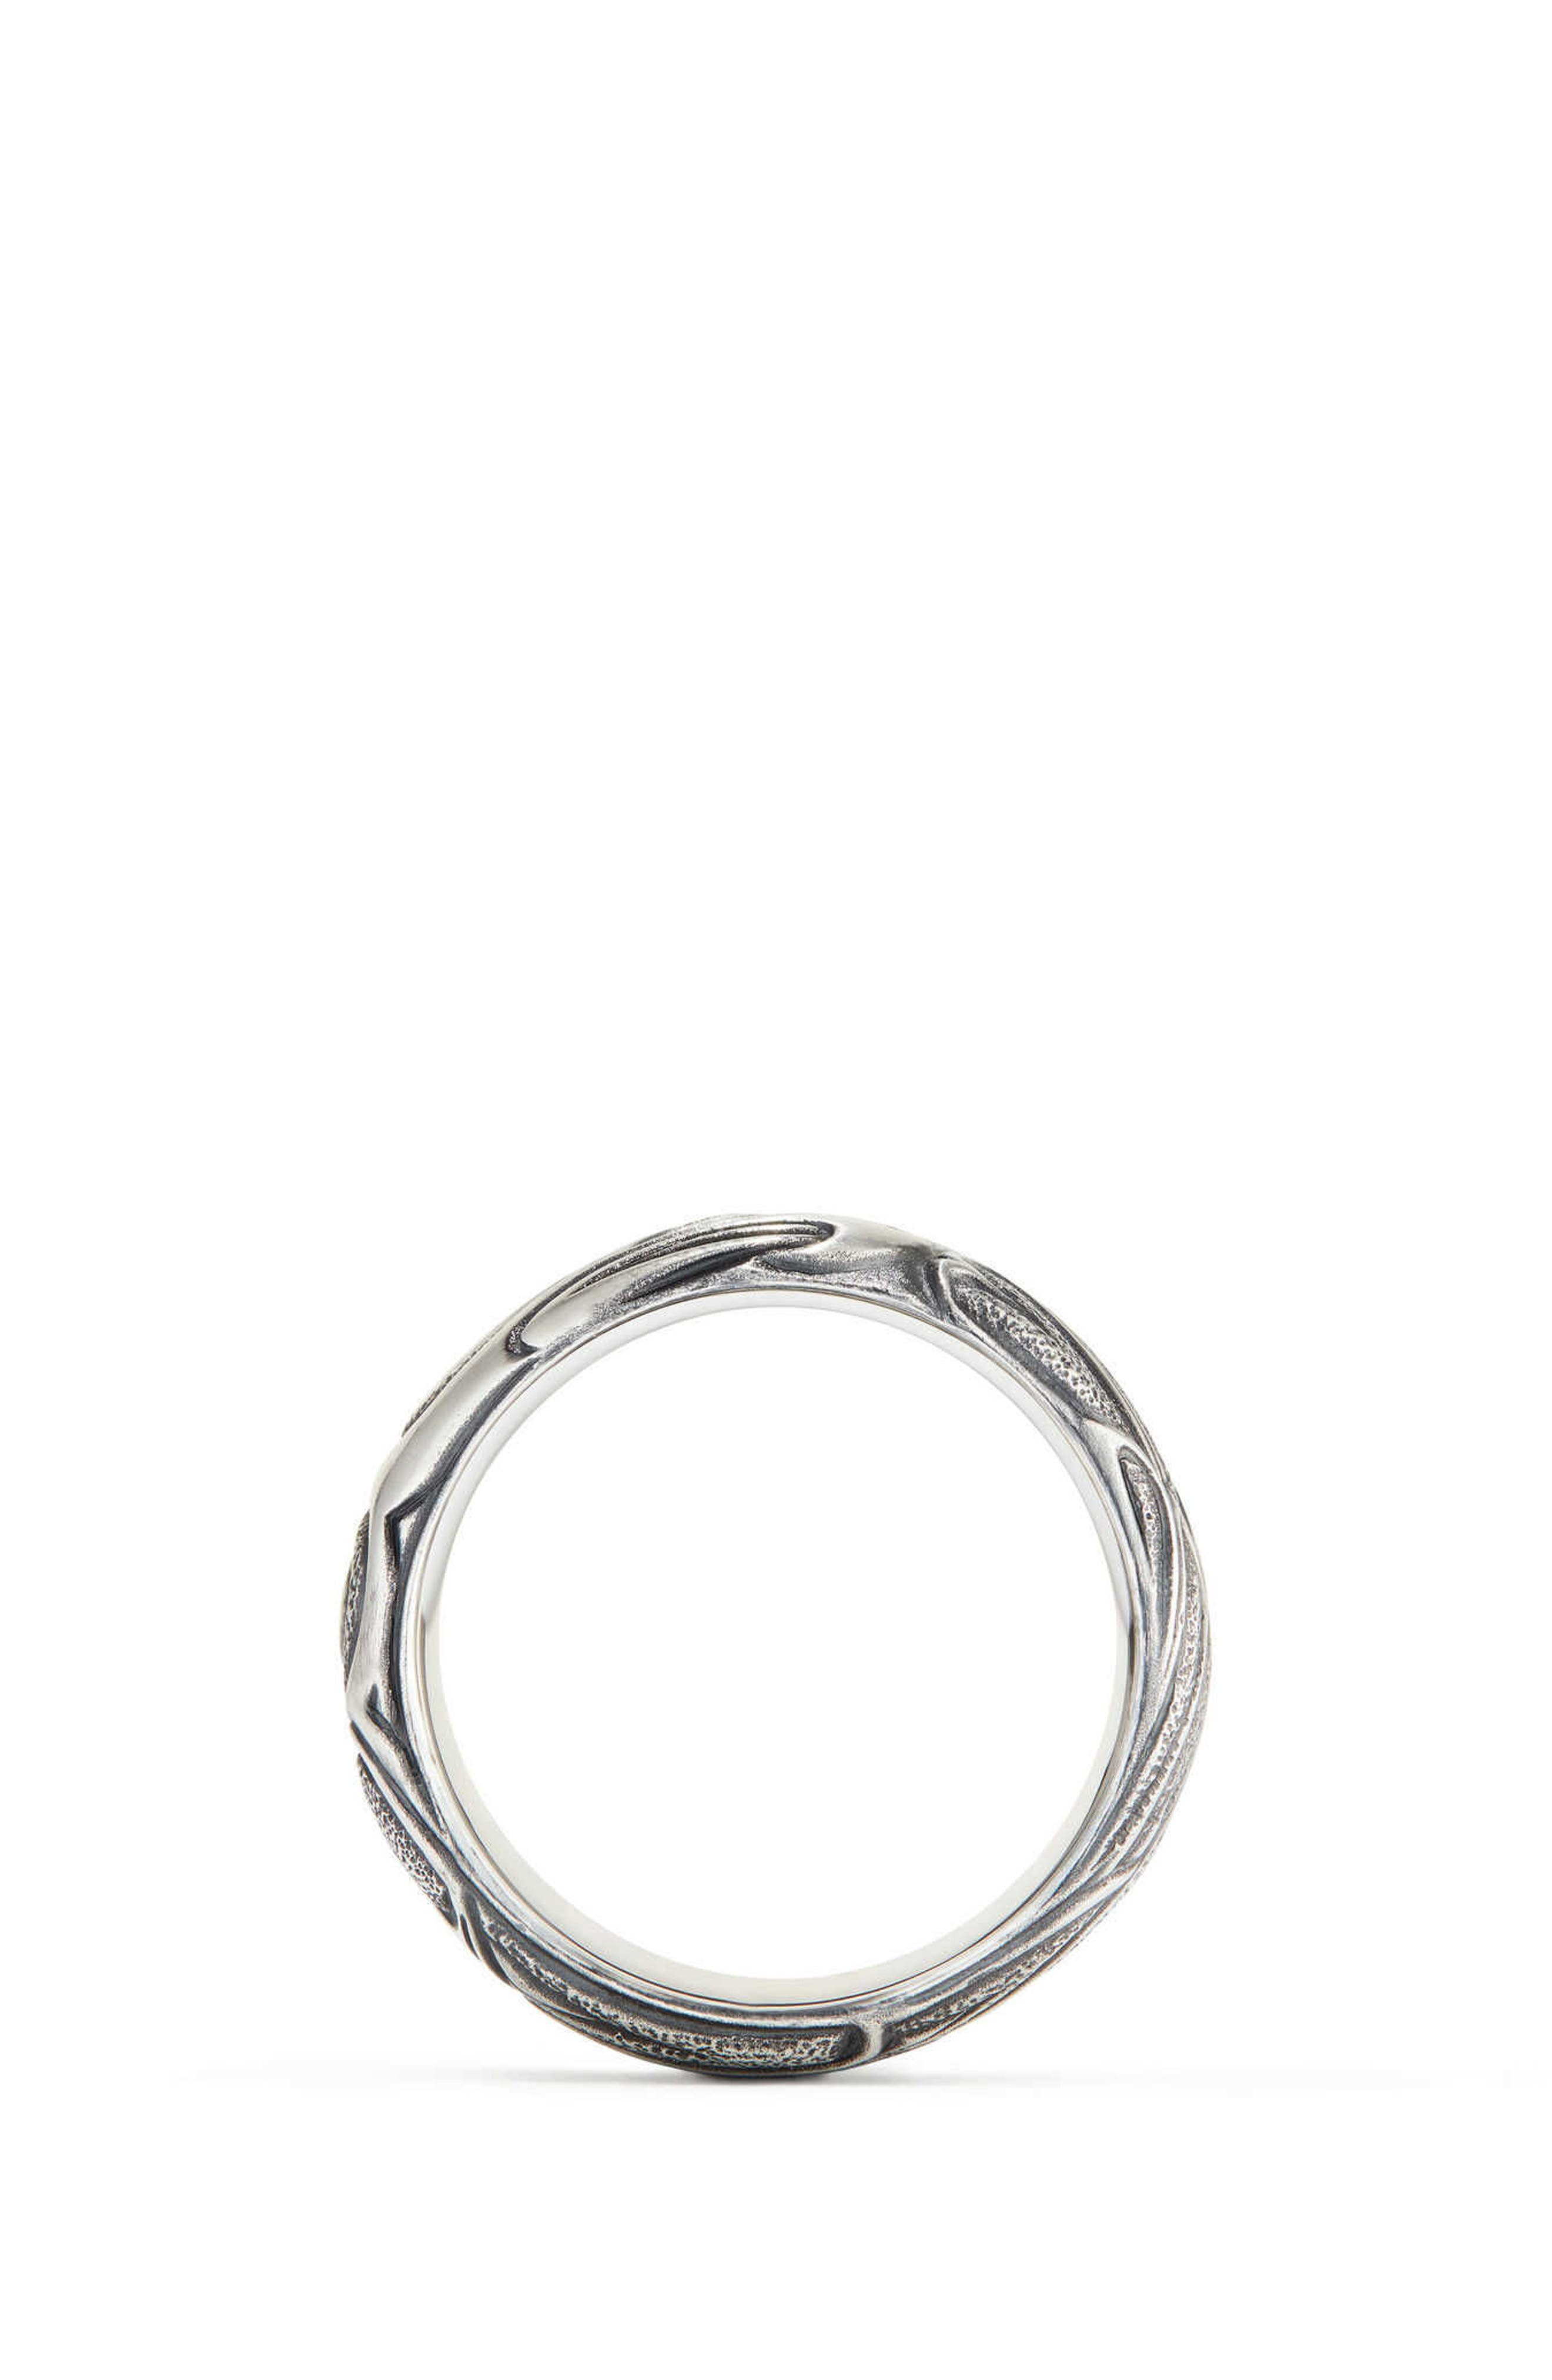 Northwest Wide Band Ring,                             Alternate thumbnail 2, color,                             Silver